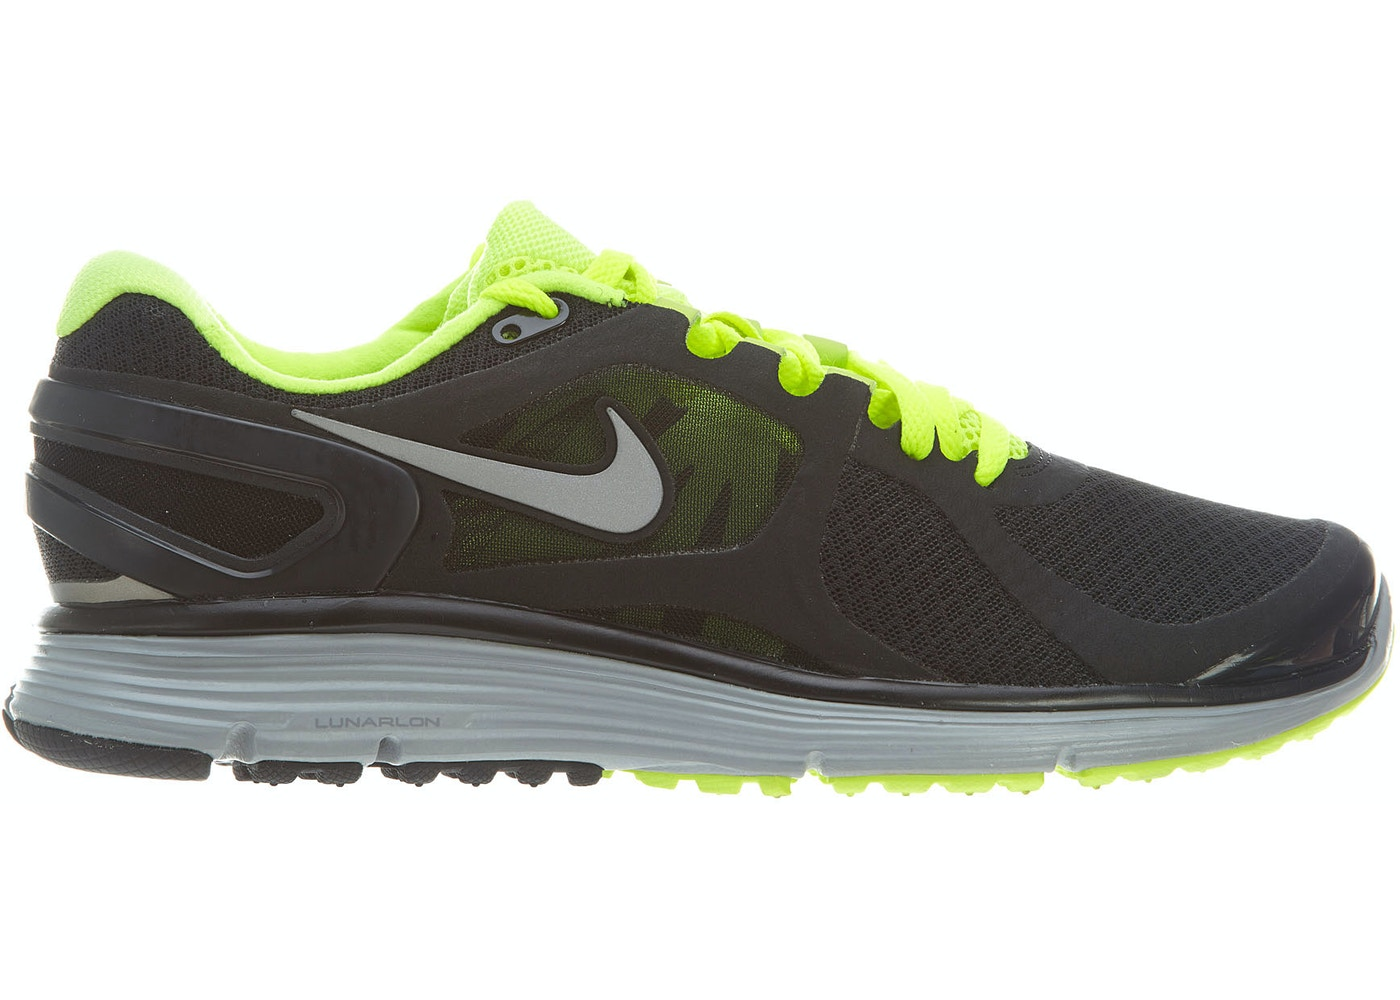 competitive price e554c 6cb24 Nike Lunareclipse + 2 Black Volt Wolf Grey Reflect Silver - 487983-007